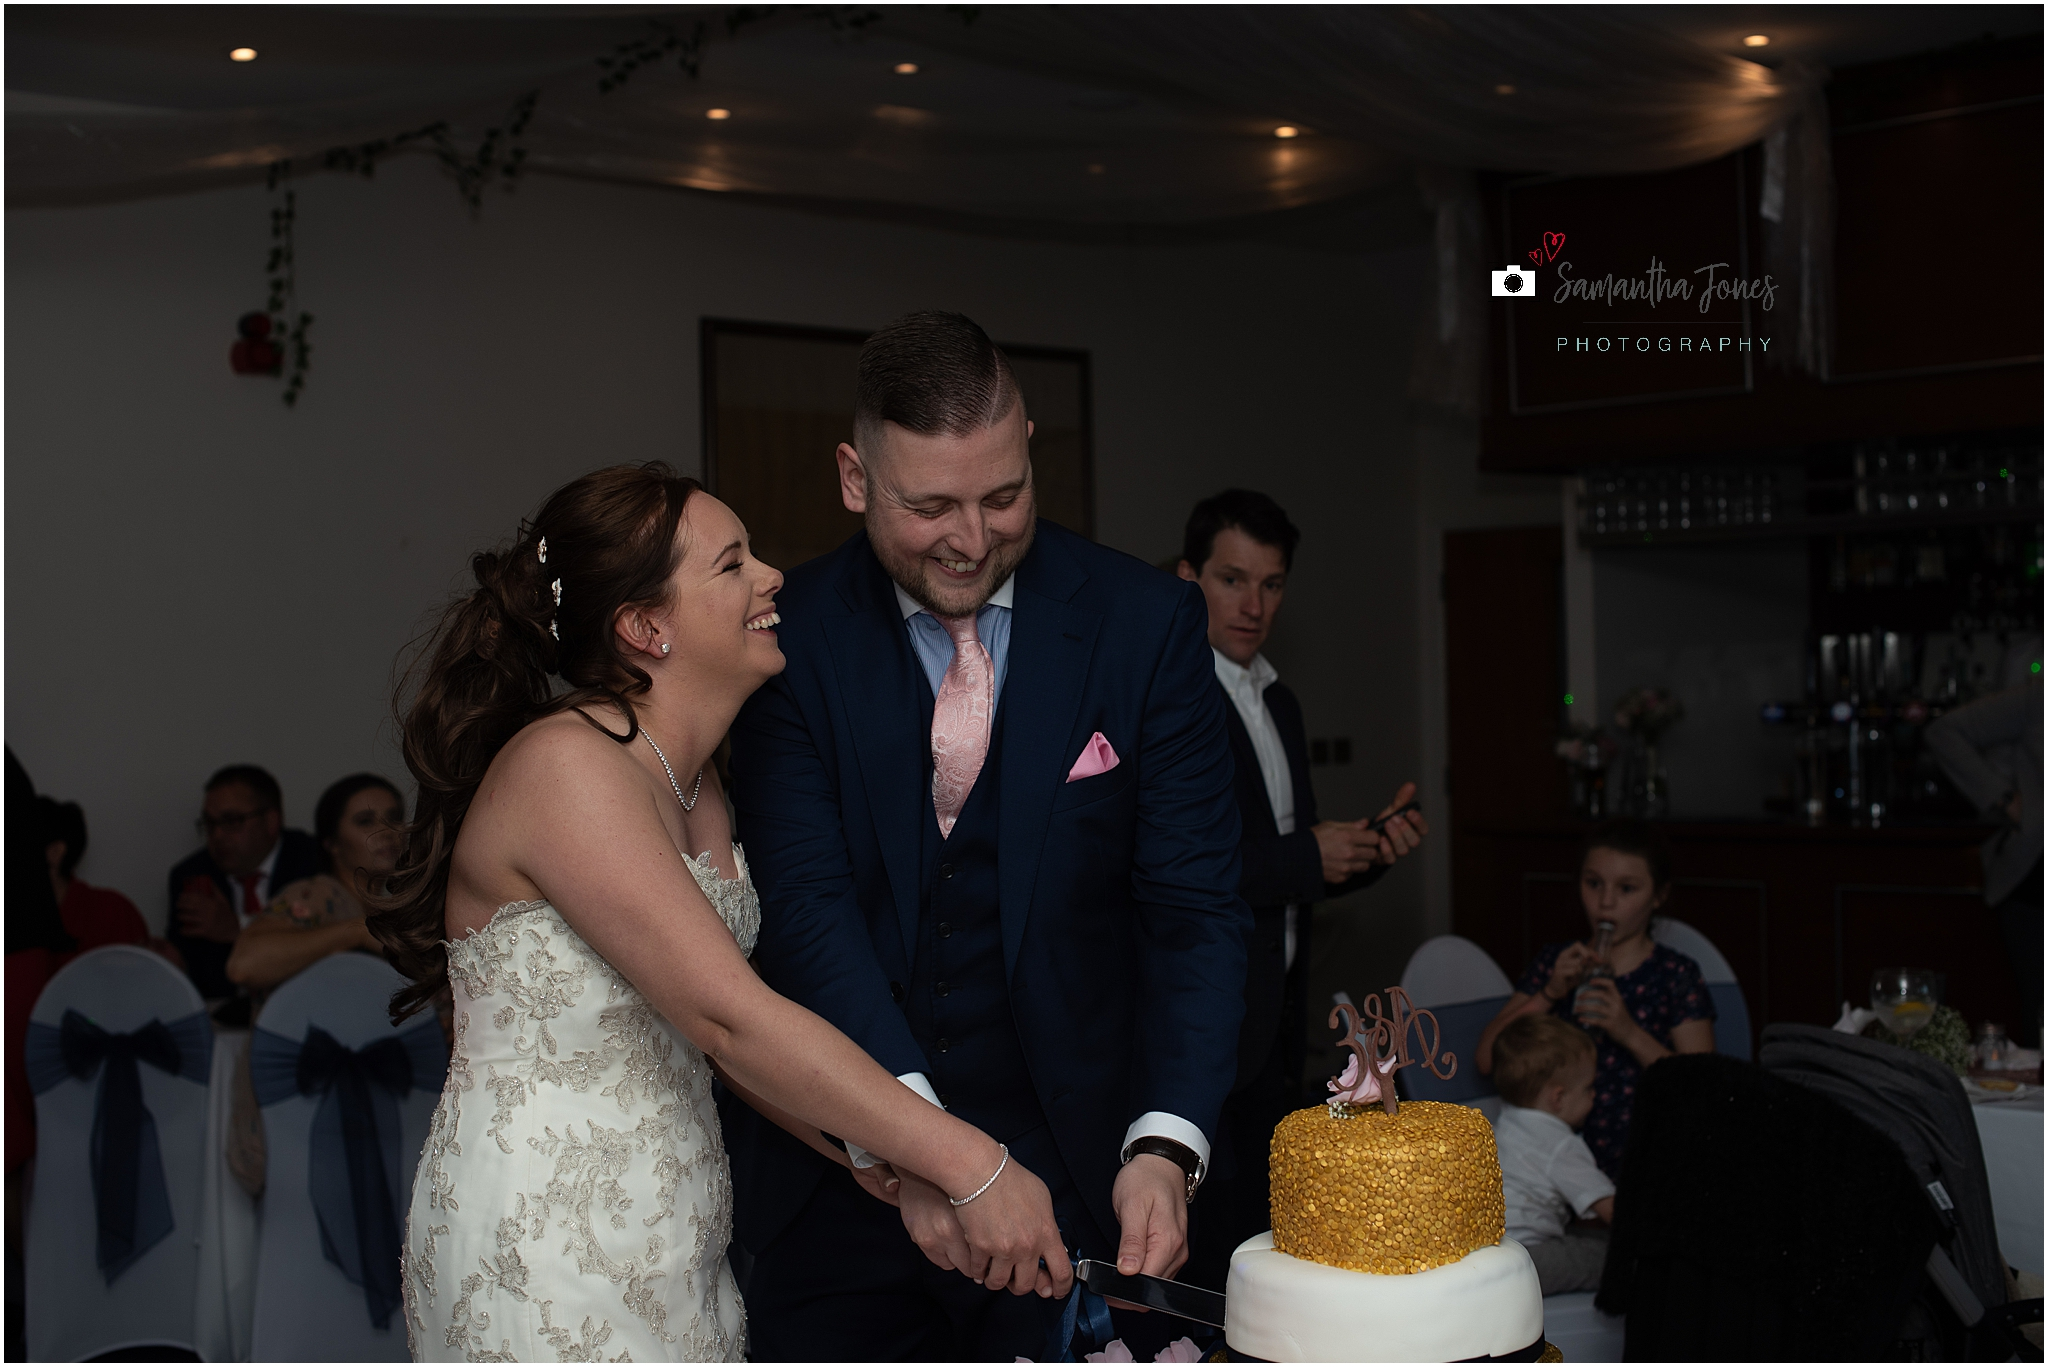 Emma and Aaron twilight wedding at Stonelees cake cutting